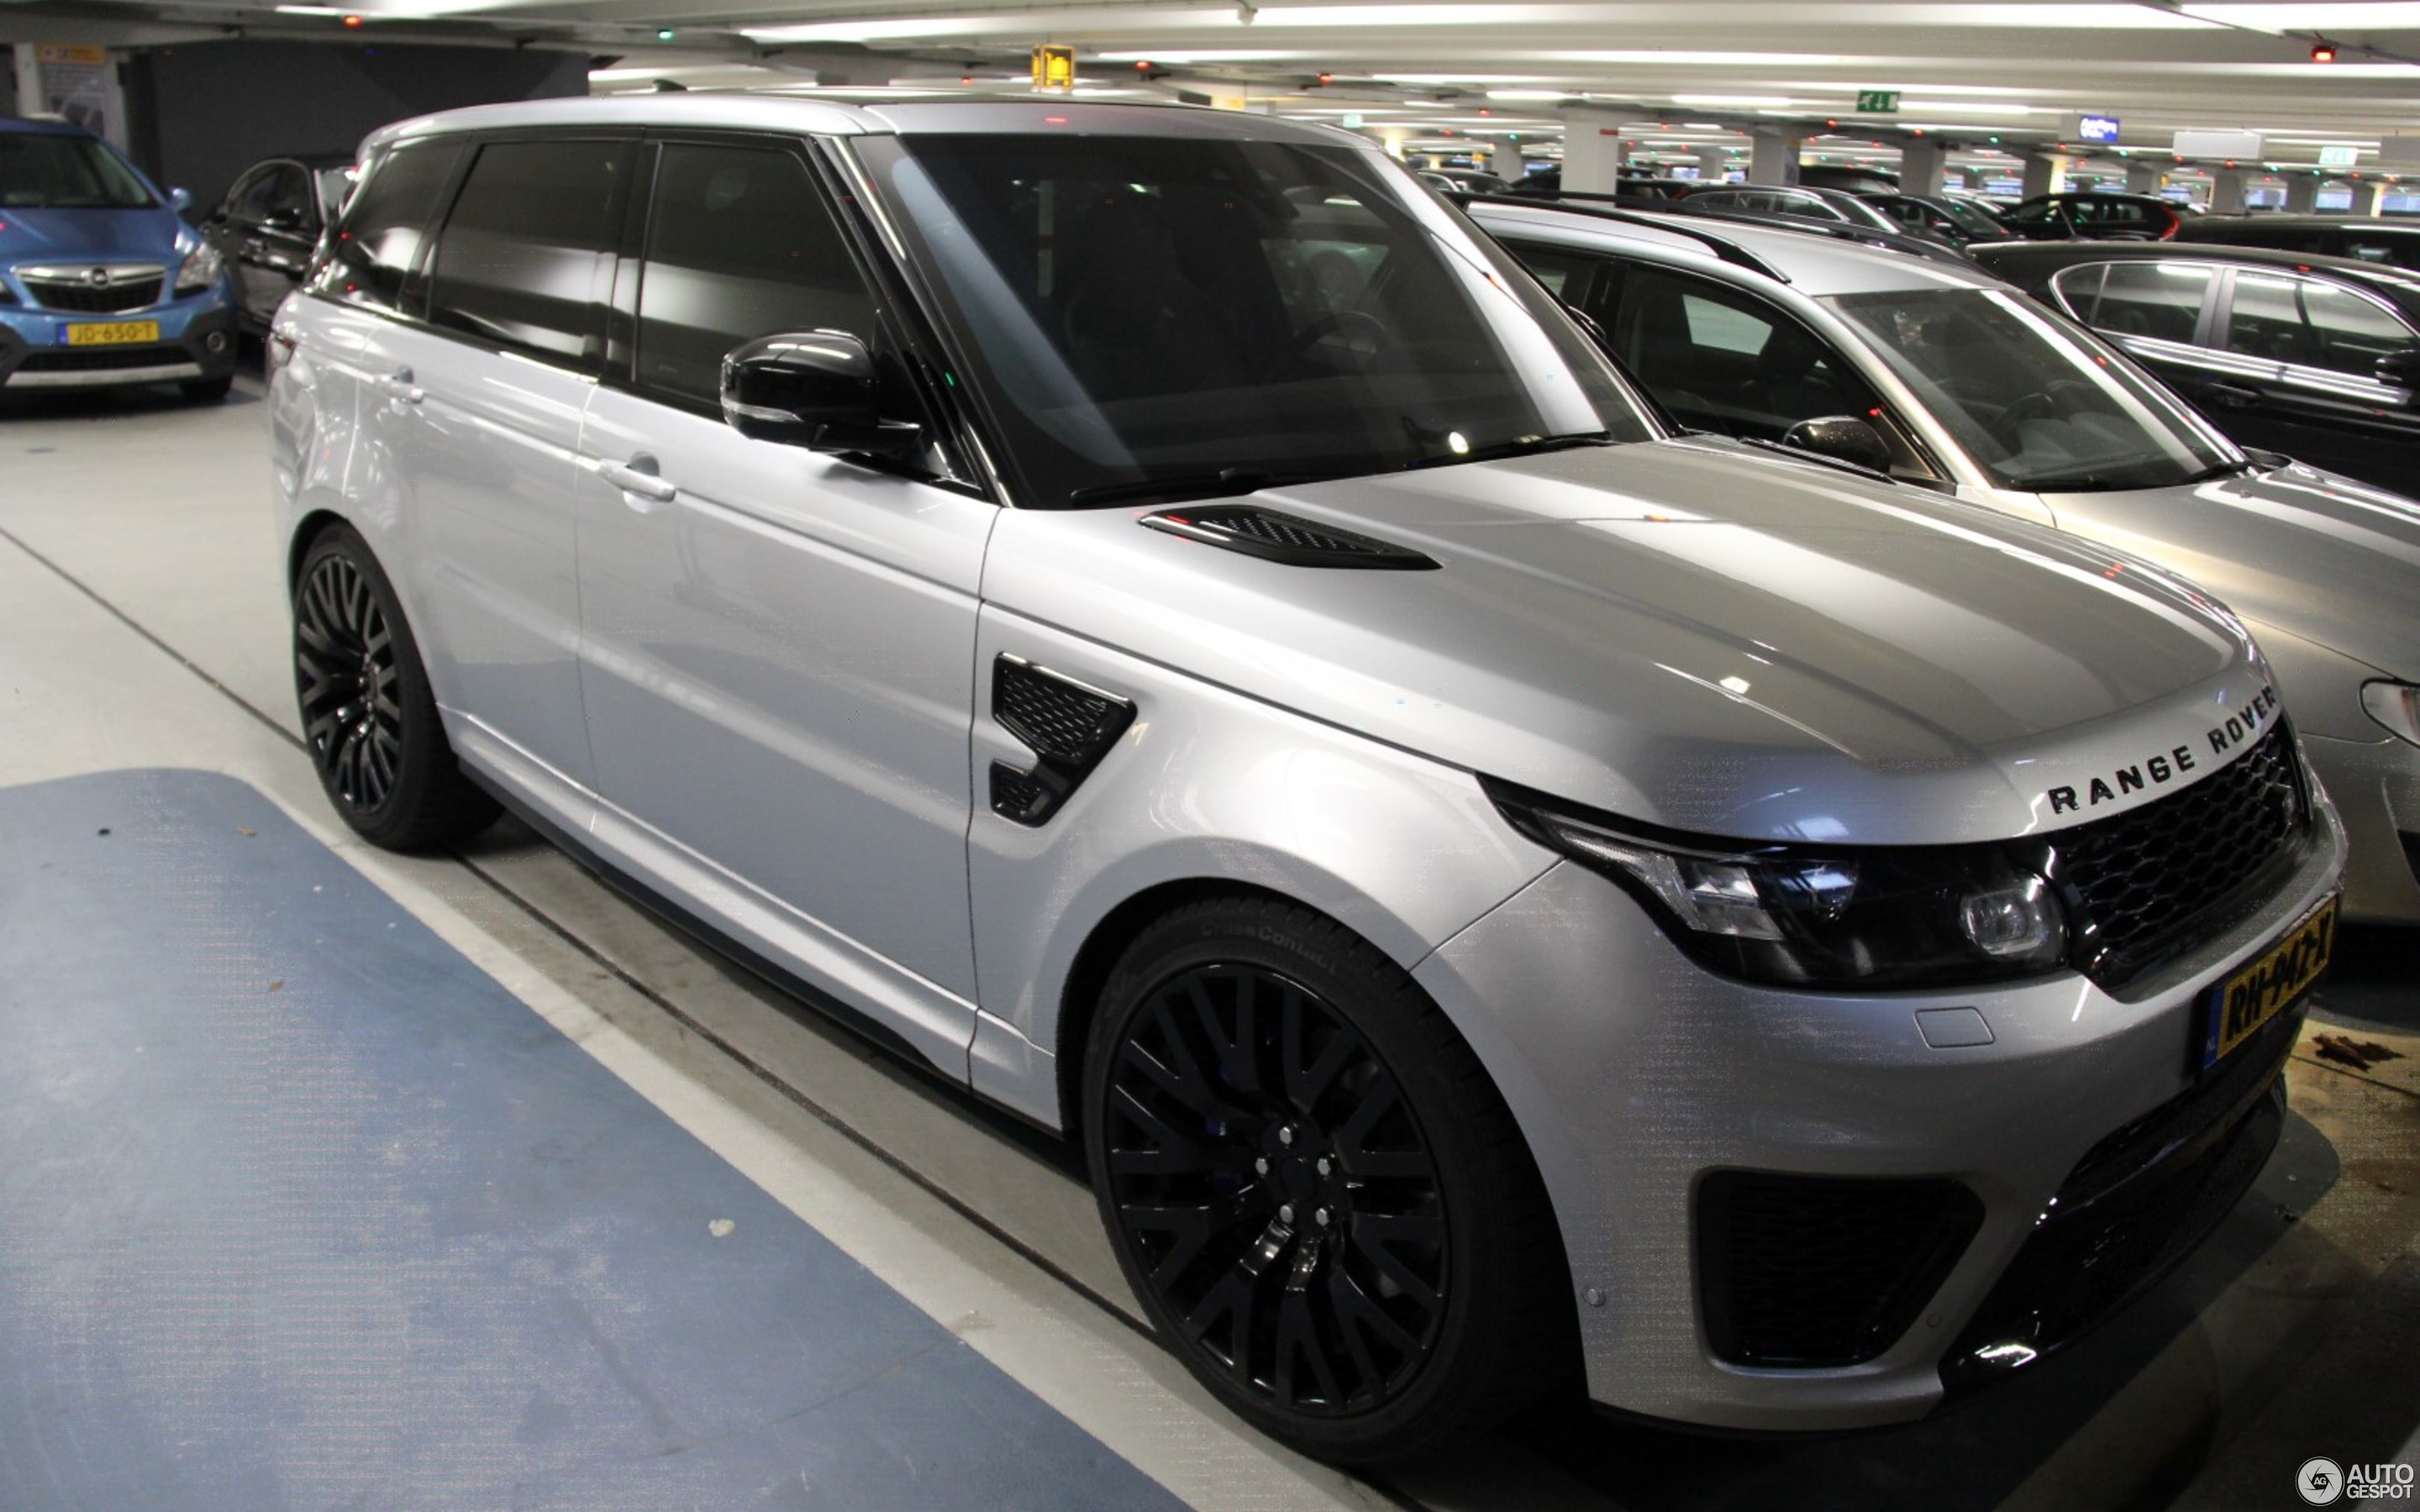 New Land Rover Car >> Land Rover Range Rover Sport SVR - 15 January 2018 - Autogespot